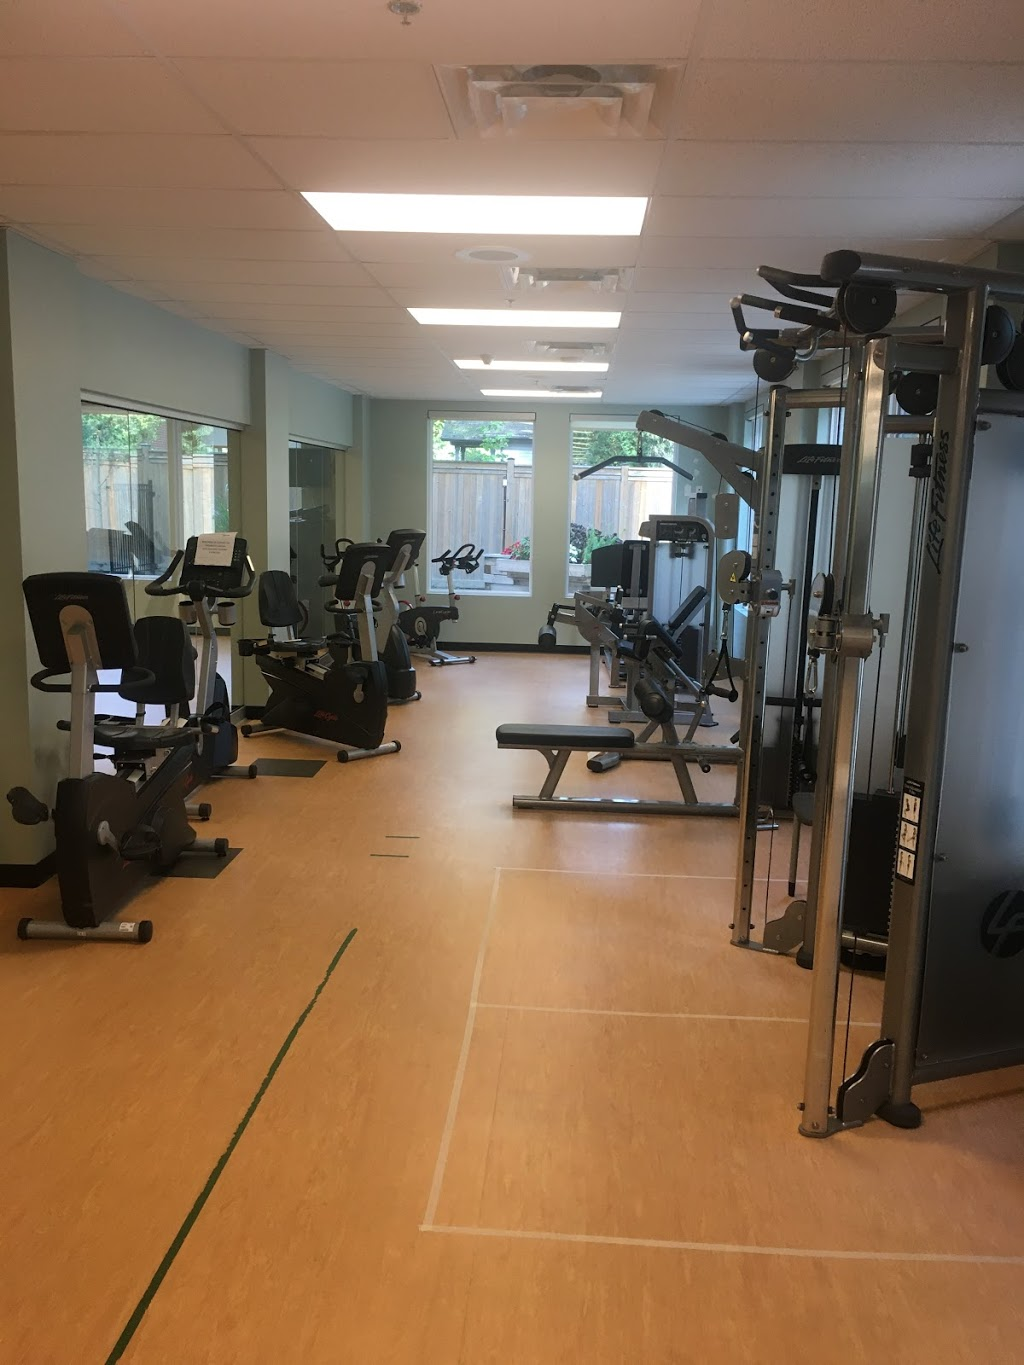 Advanced Fitness Center | gym | 230 Victoria St #102, London, ON N6A 2C2, Canada | 5198731603 OR +1 519-873-1603